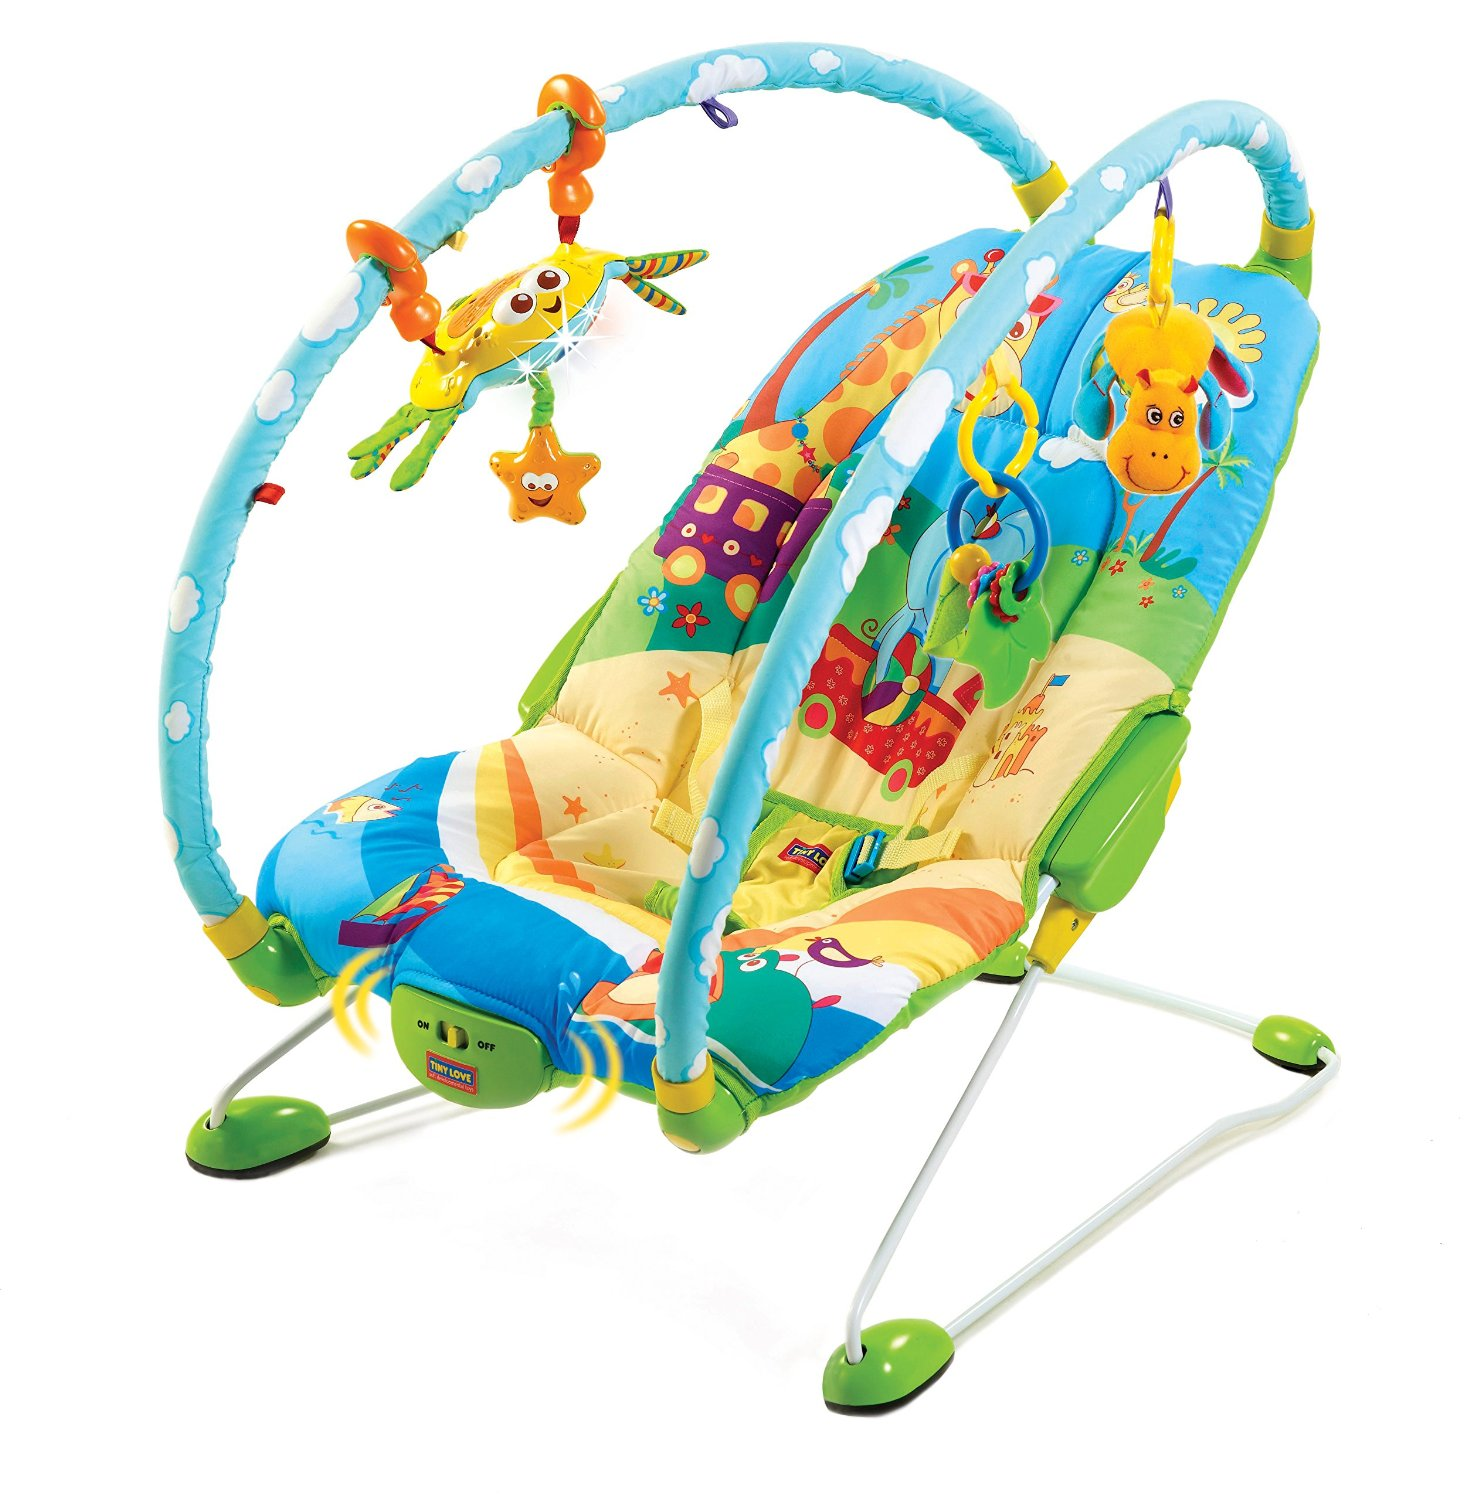 Best Baby Bouncer parison Guide